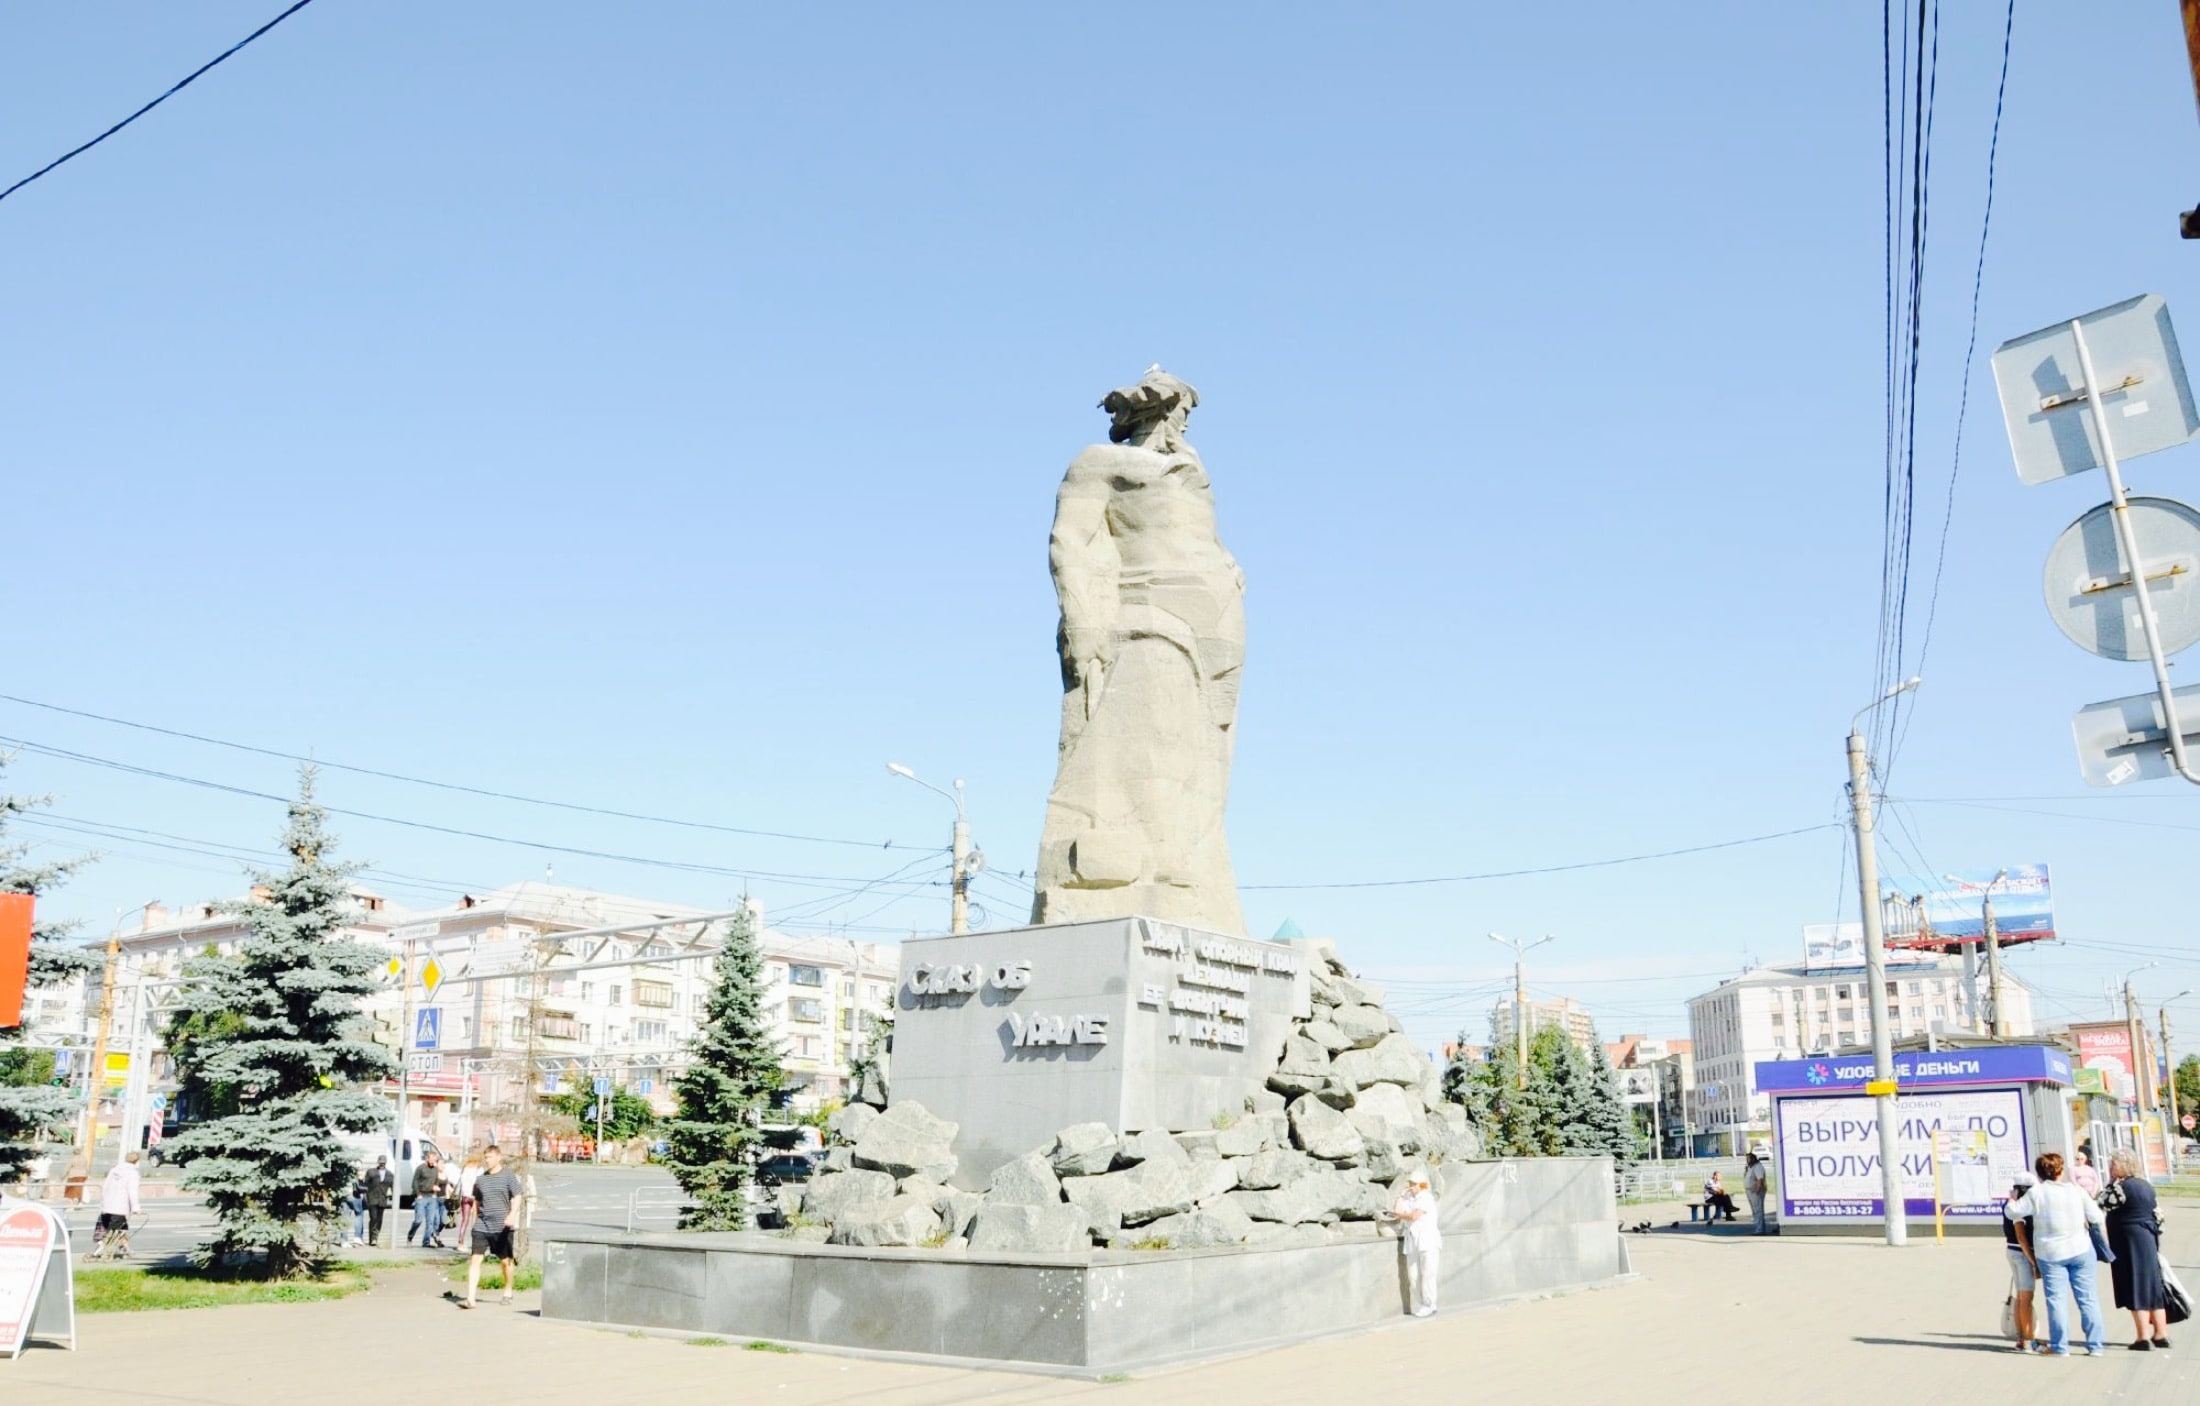 The Tale about Urals statue